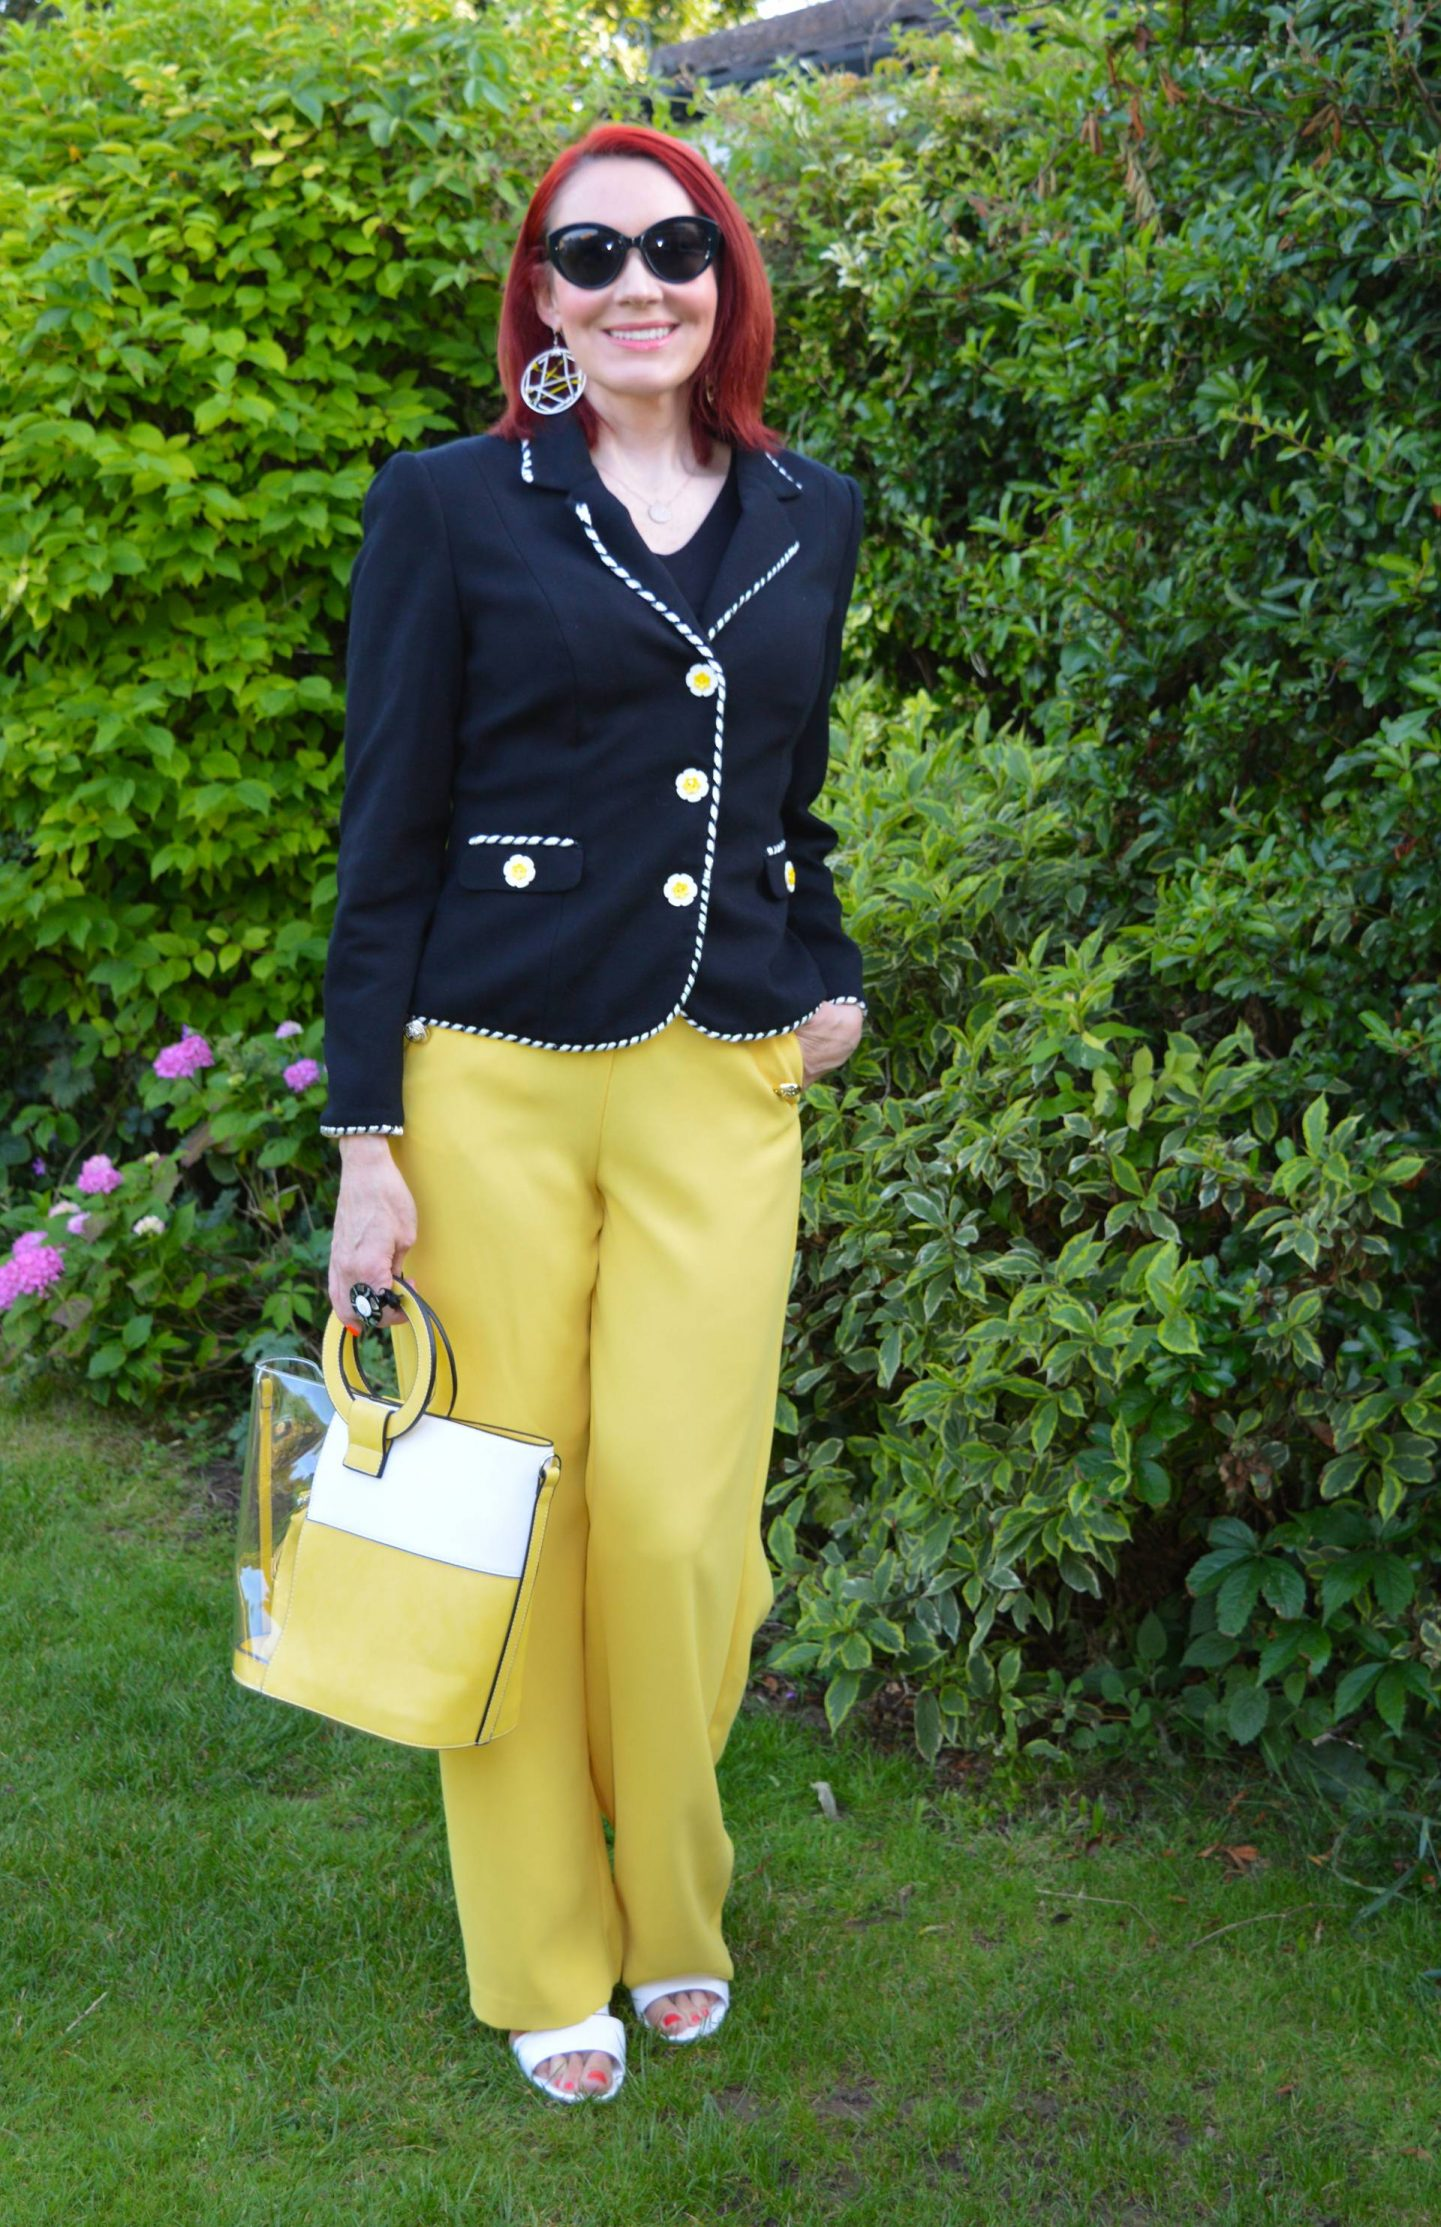 Creative Cover Ups - July's Thrifty Six, Marks & Spencer black jacket with flower buttons, River island yellow trousers